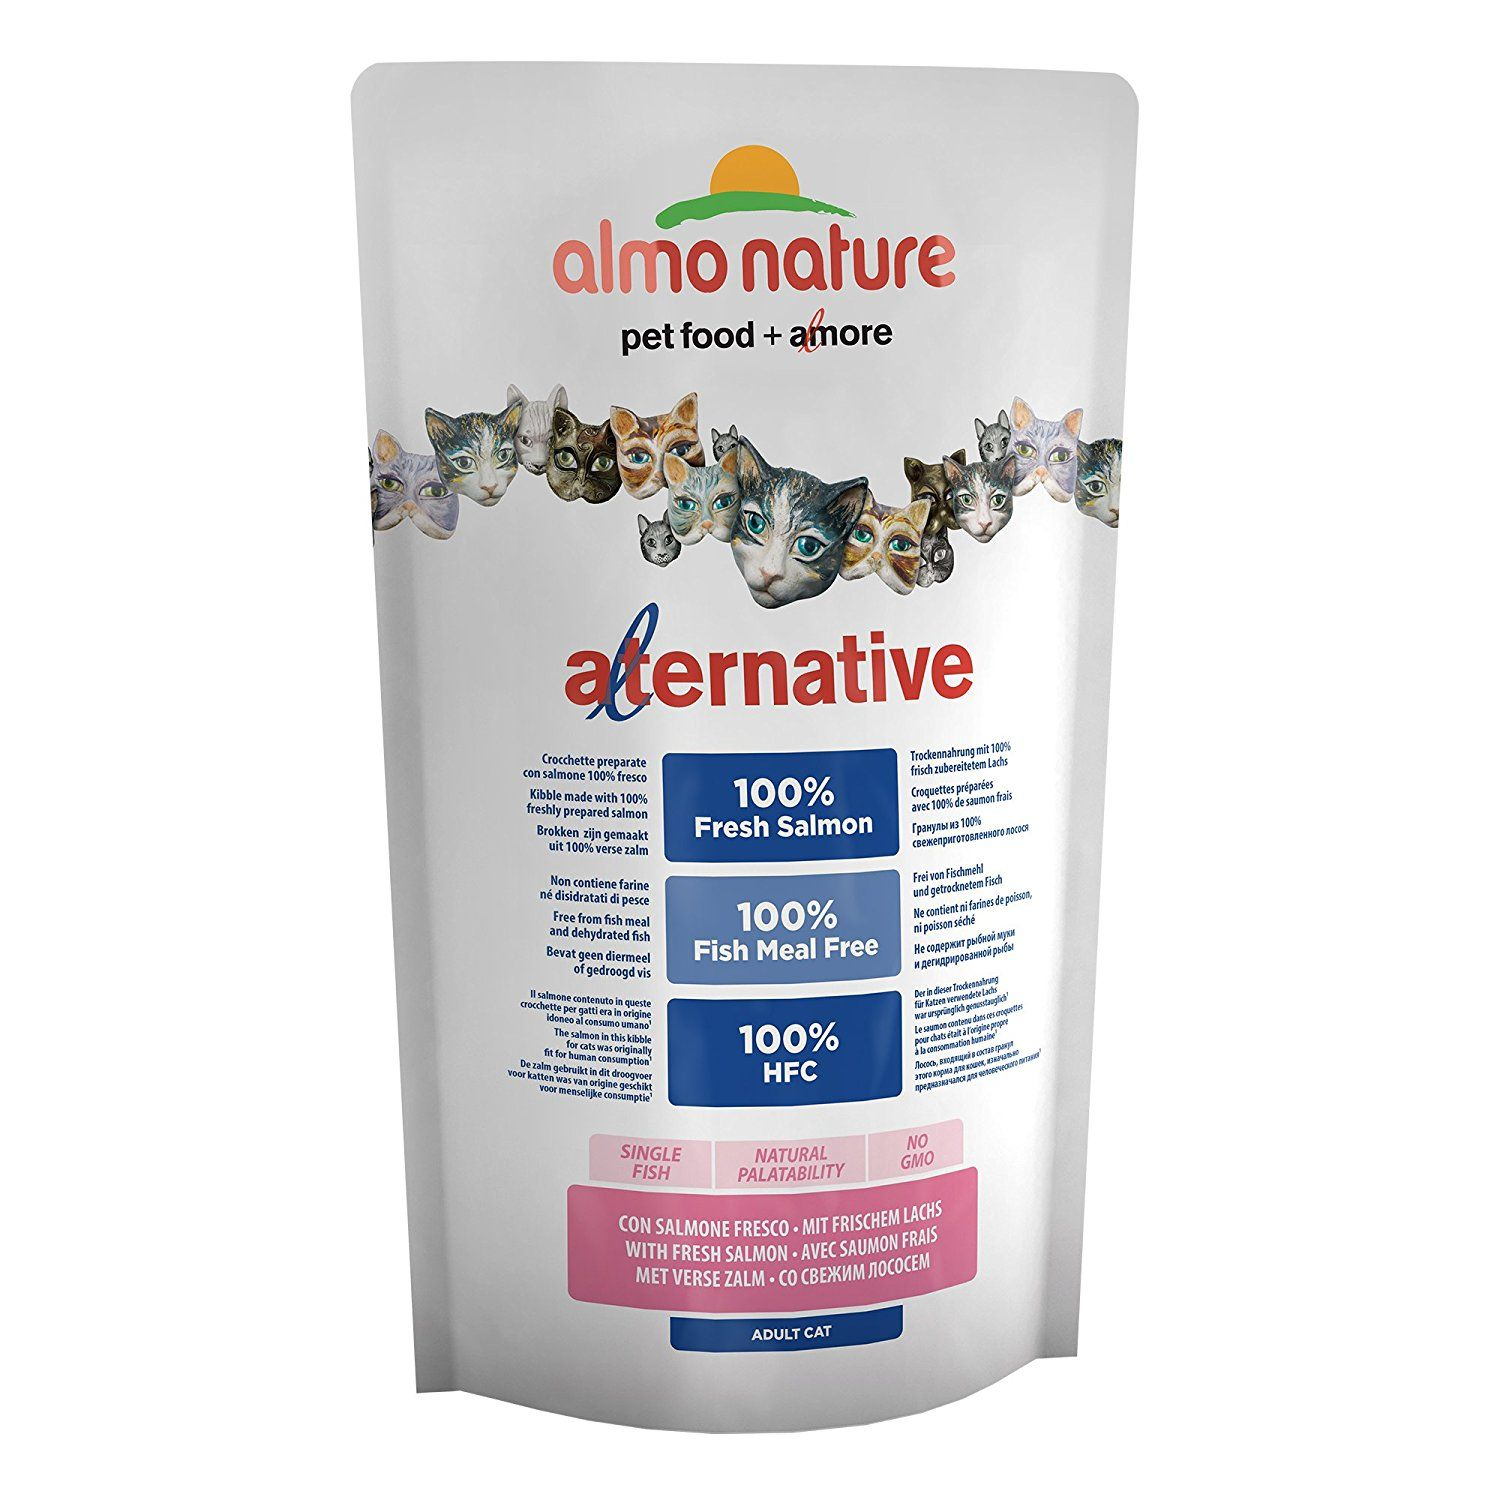 Almo Nature New Alternative Cat Kibble 100 Fresh Salmon 2 X 750g Pack Click Image To Read More Details Catfood Almo Food Animals Fresca